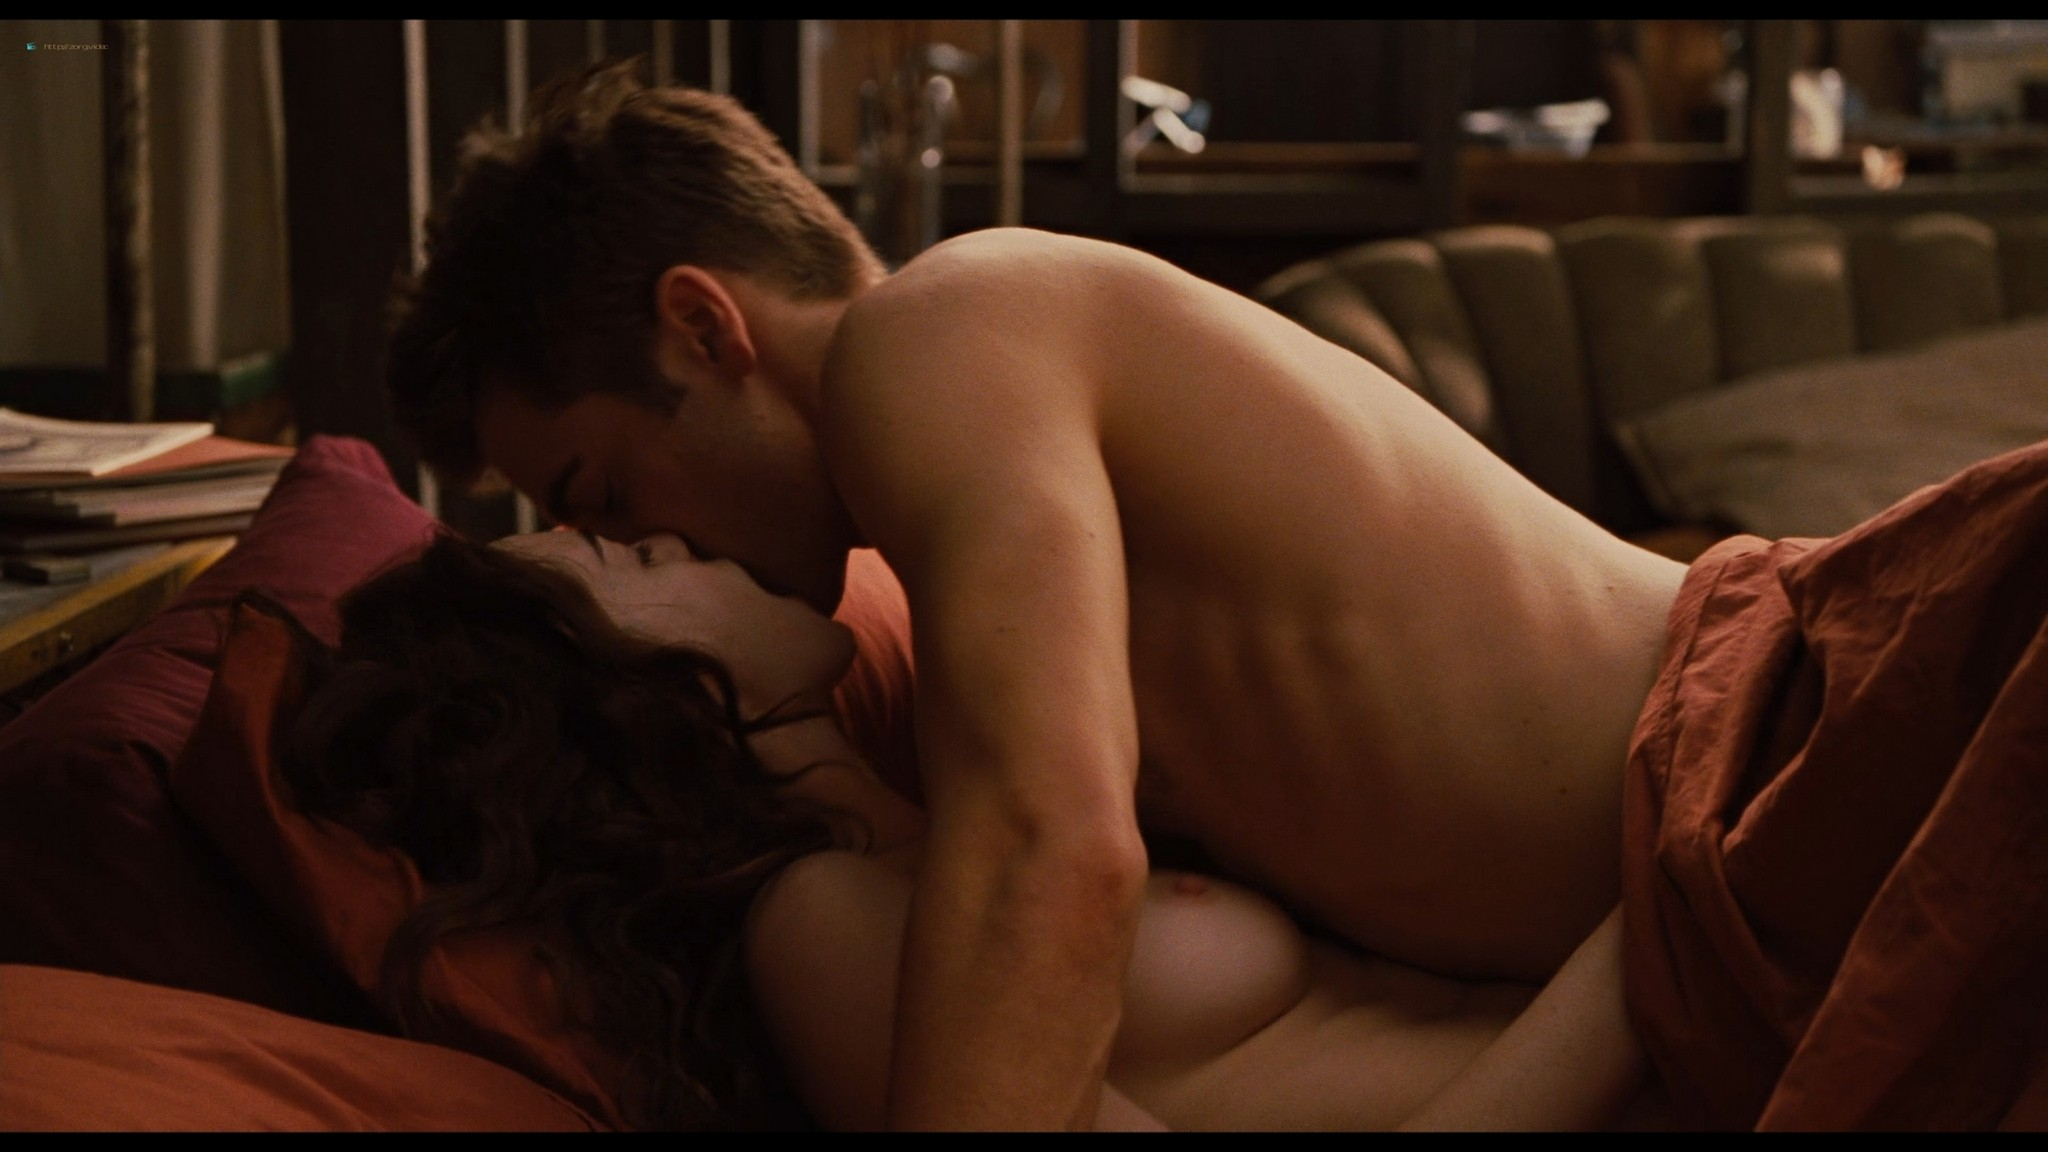 Anne Hathaway nude sex, Katheryn Winnick hot - Love and other drugs (2010) HD 1080p BluRay (11)